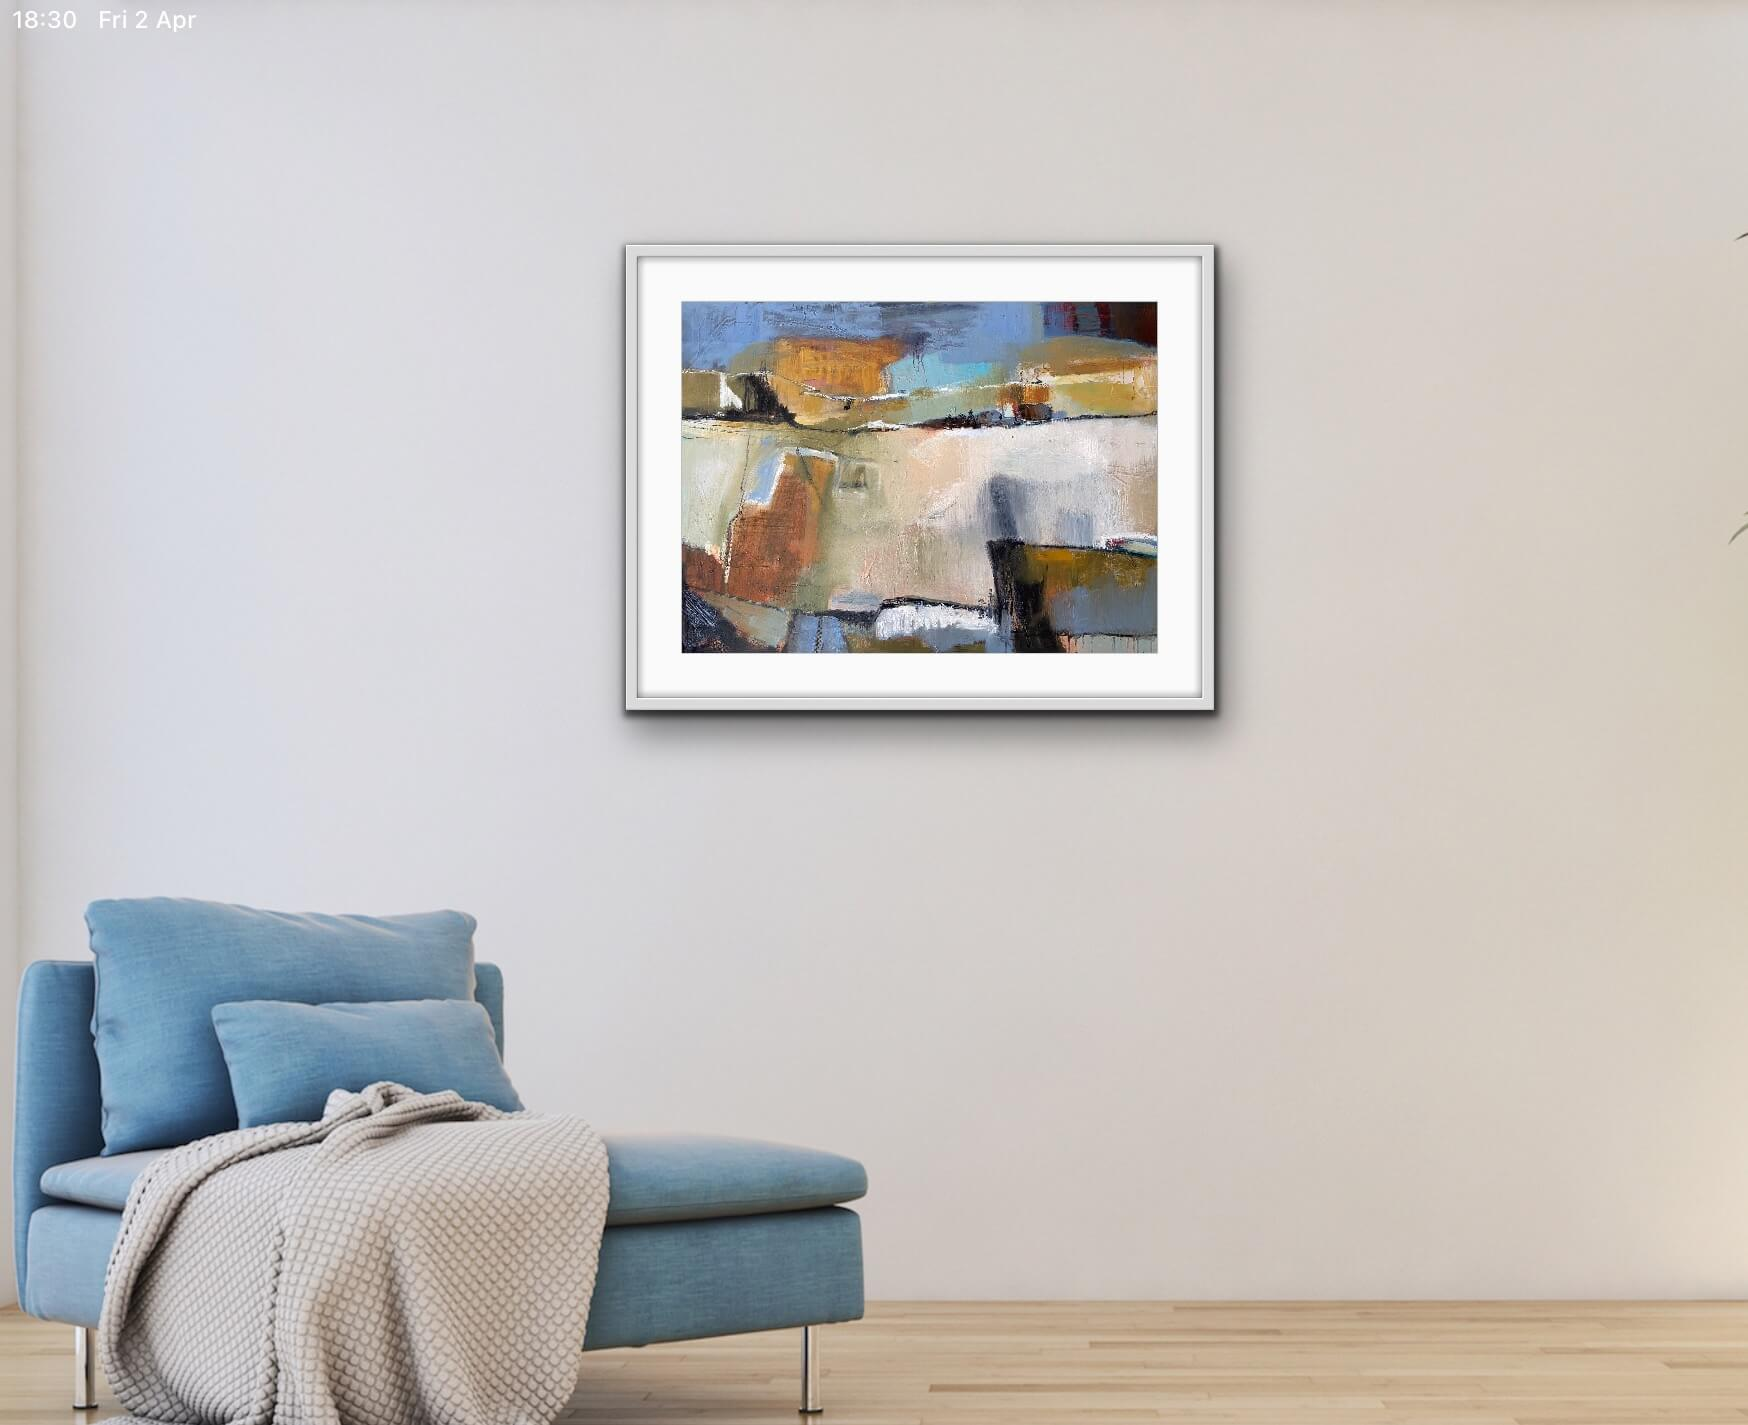 Denim Sky Abstract Painting Hanging in Living Room